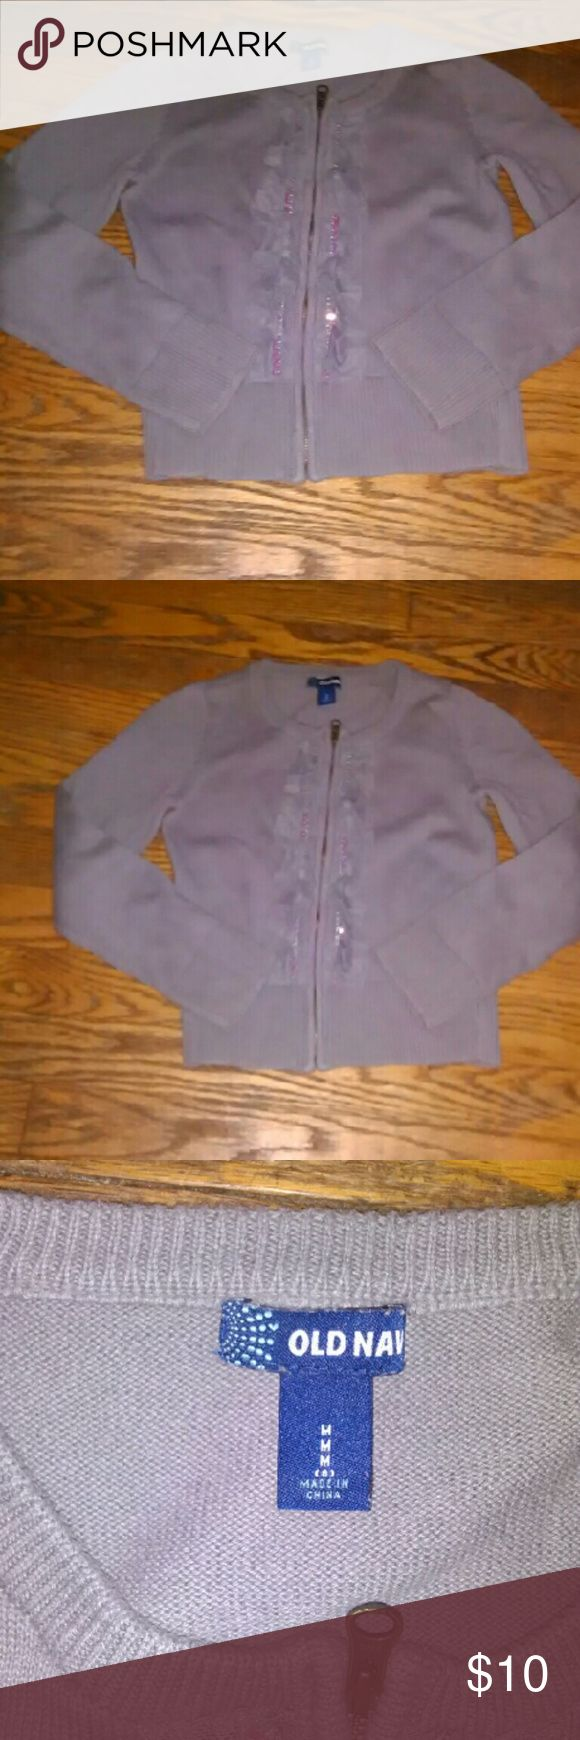 Girls Old Navy zip up cardigan Girls size 8, cute ruffles down the front,EUC. The cardigan is gray, but has a hint of purple in it. Old Navy Shirts & Tops Sweaters